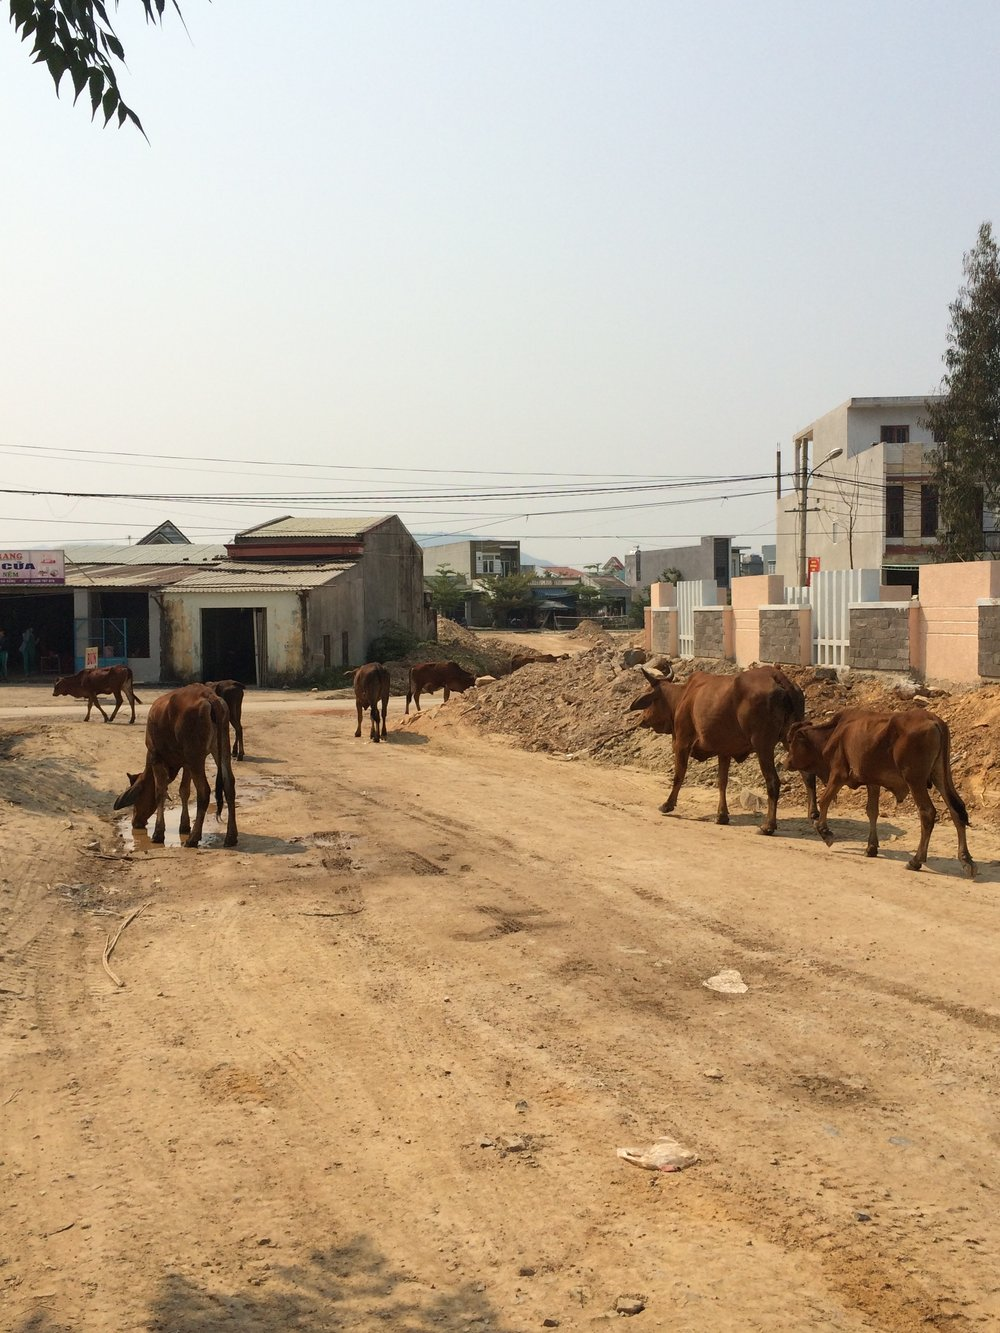 Cows hang out on the future site of the new water treatment plant to serve Da Nang, Vietnam